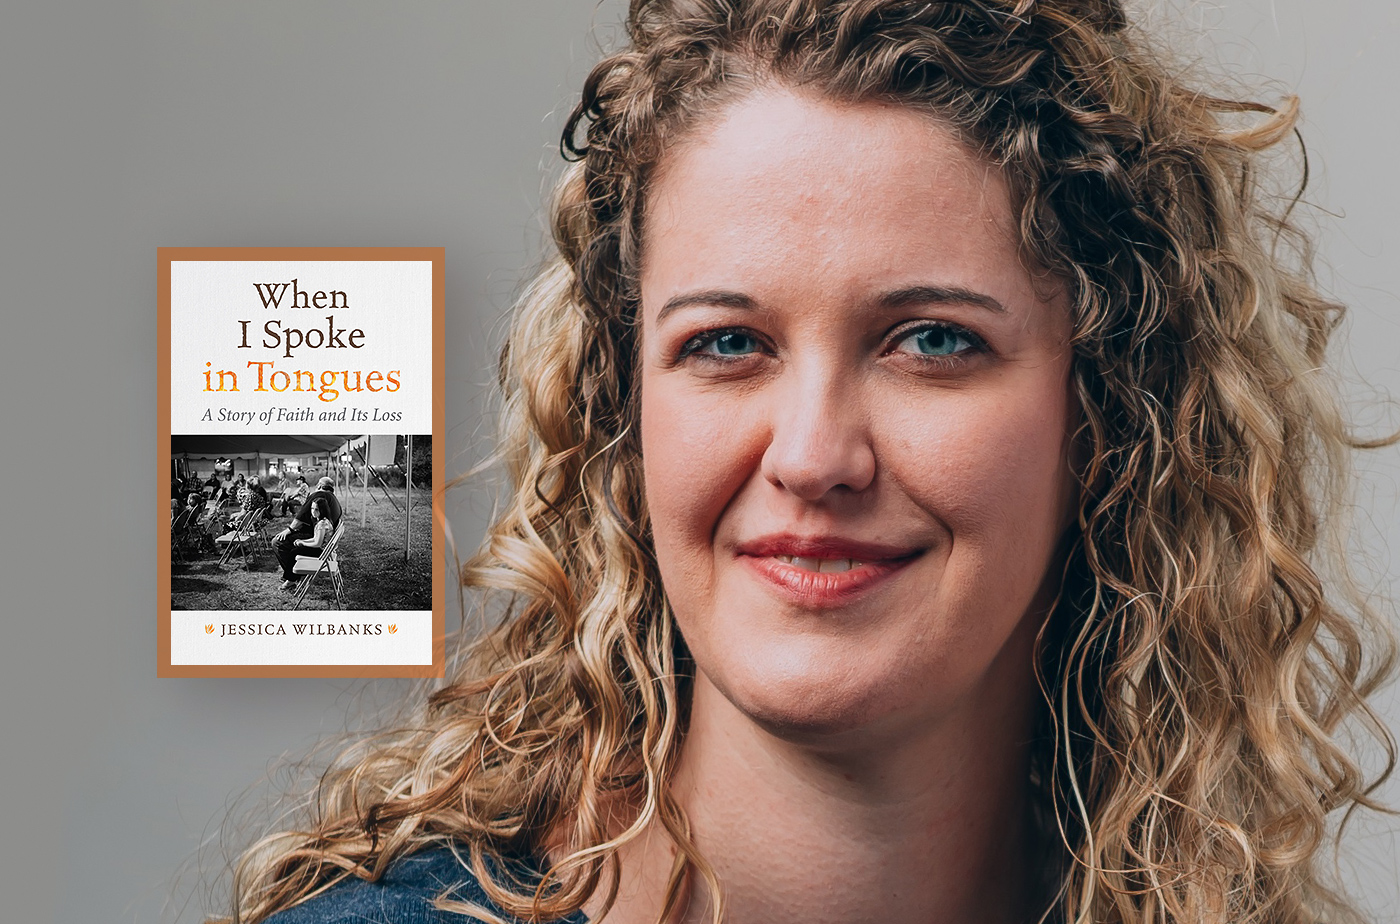 Catapult online classes: Jessica Wilbanks, 4-Week Online Nonfiction Workshop: Memoir 101, Nonfiction, Memoir, Workshop